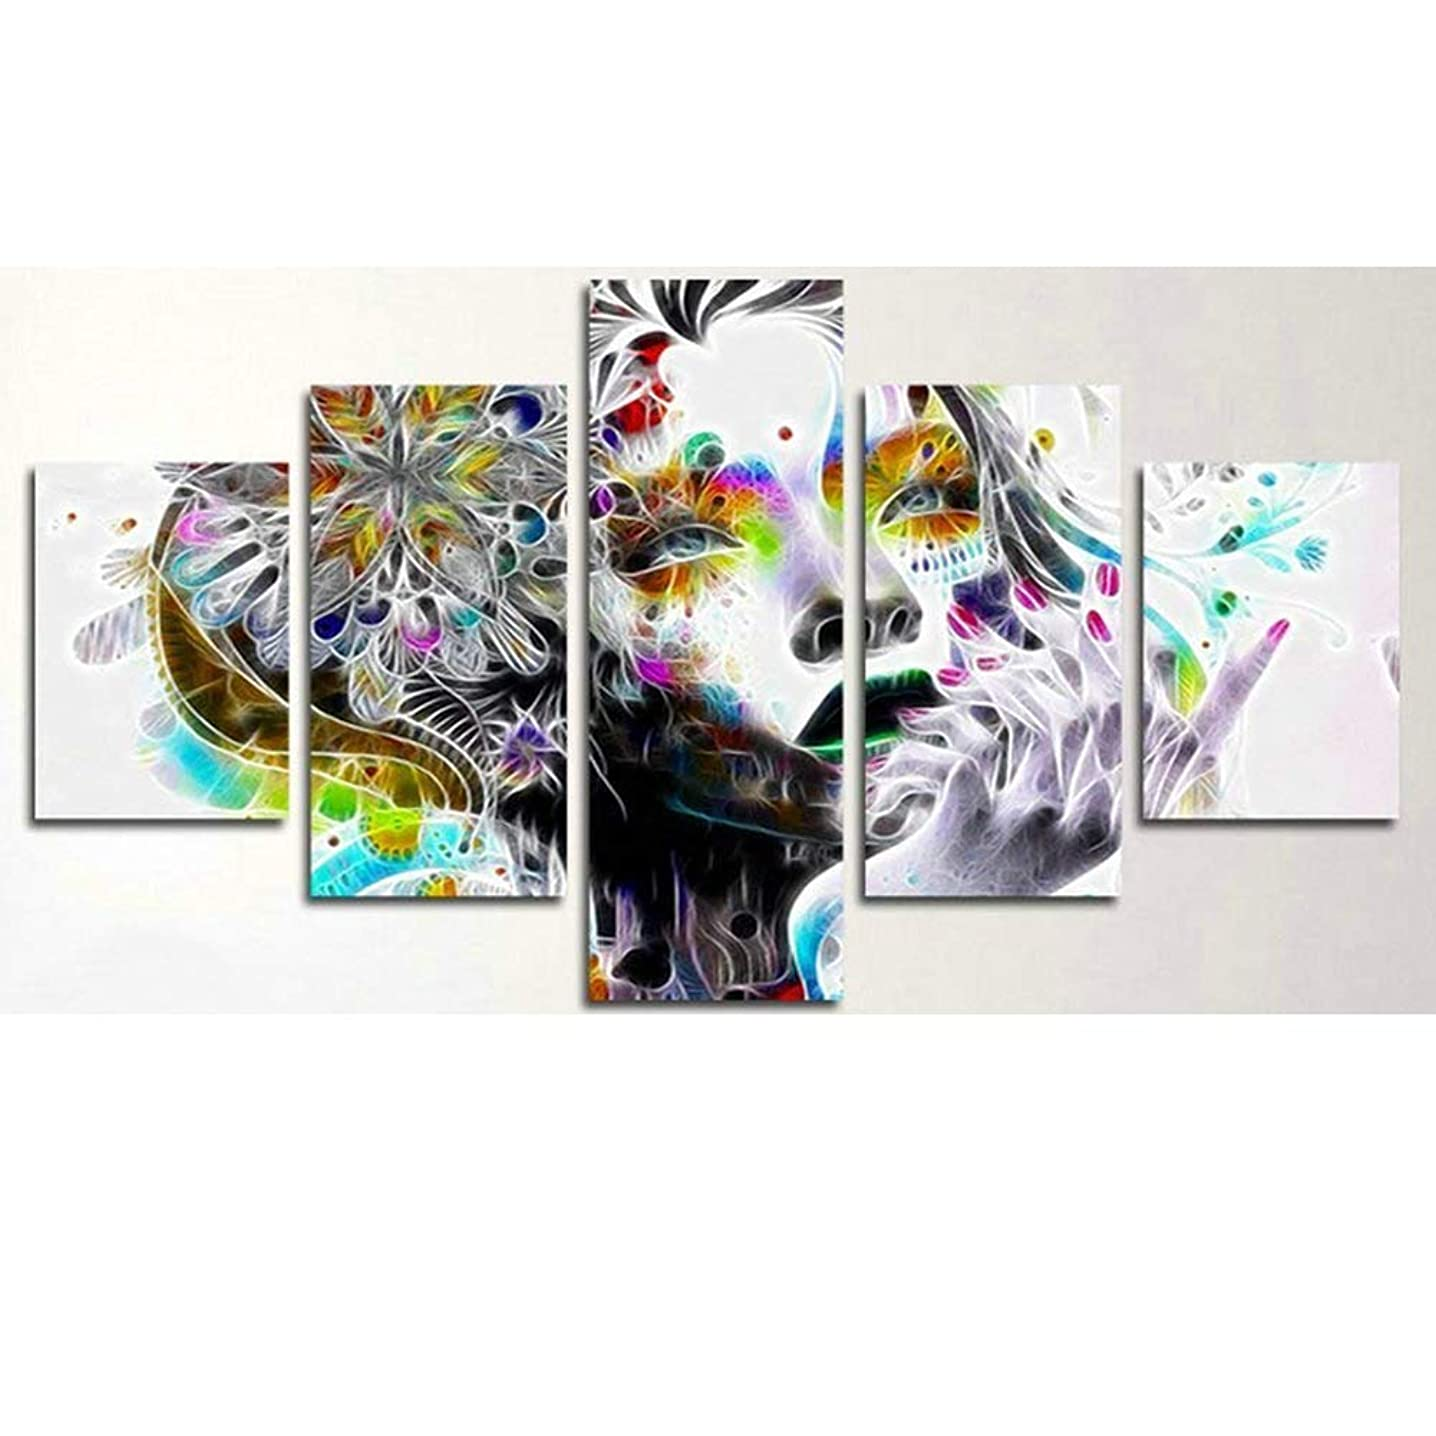 5D Diamond Painting Kits Full Drill Diamond Embroidery,5 Sets of Splicing Paintings (Abstract Dream)